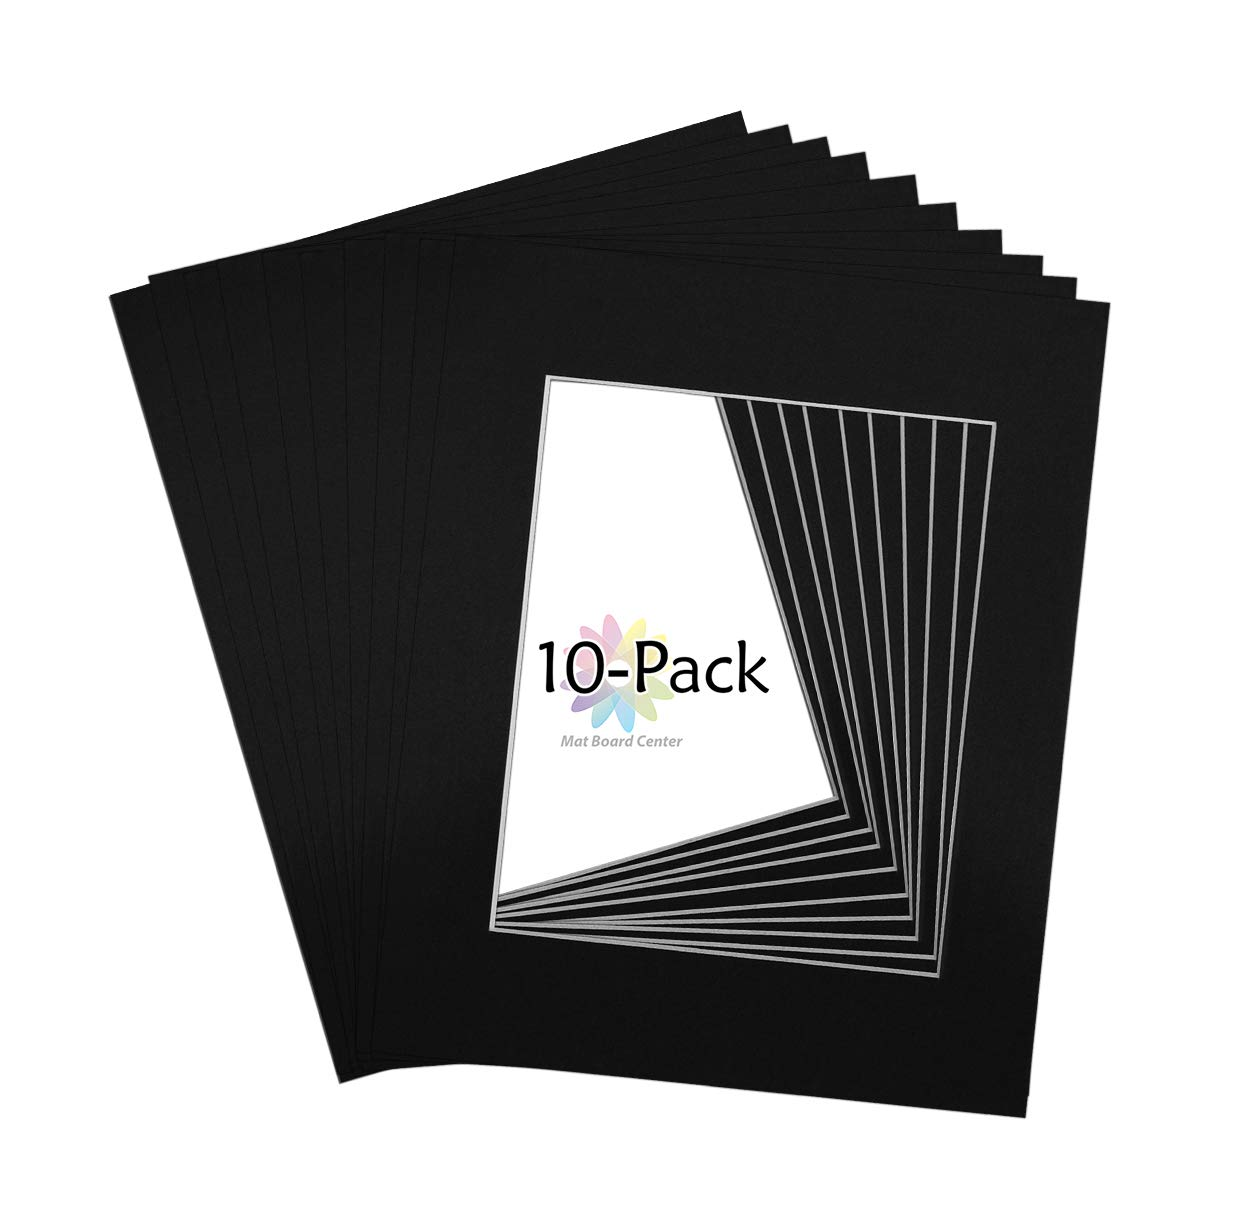 Mat Board Center, Pack of 10, 11x14 Black Colors Picture Mats for 8x10 Photos White Core by MBC MAT BOARD CENTER